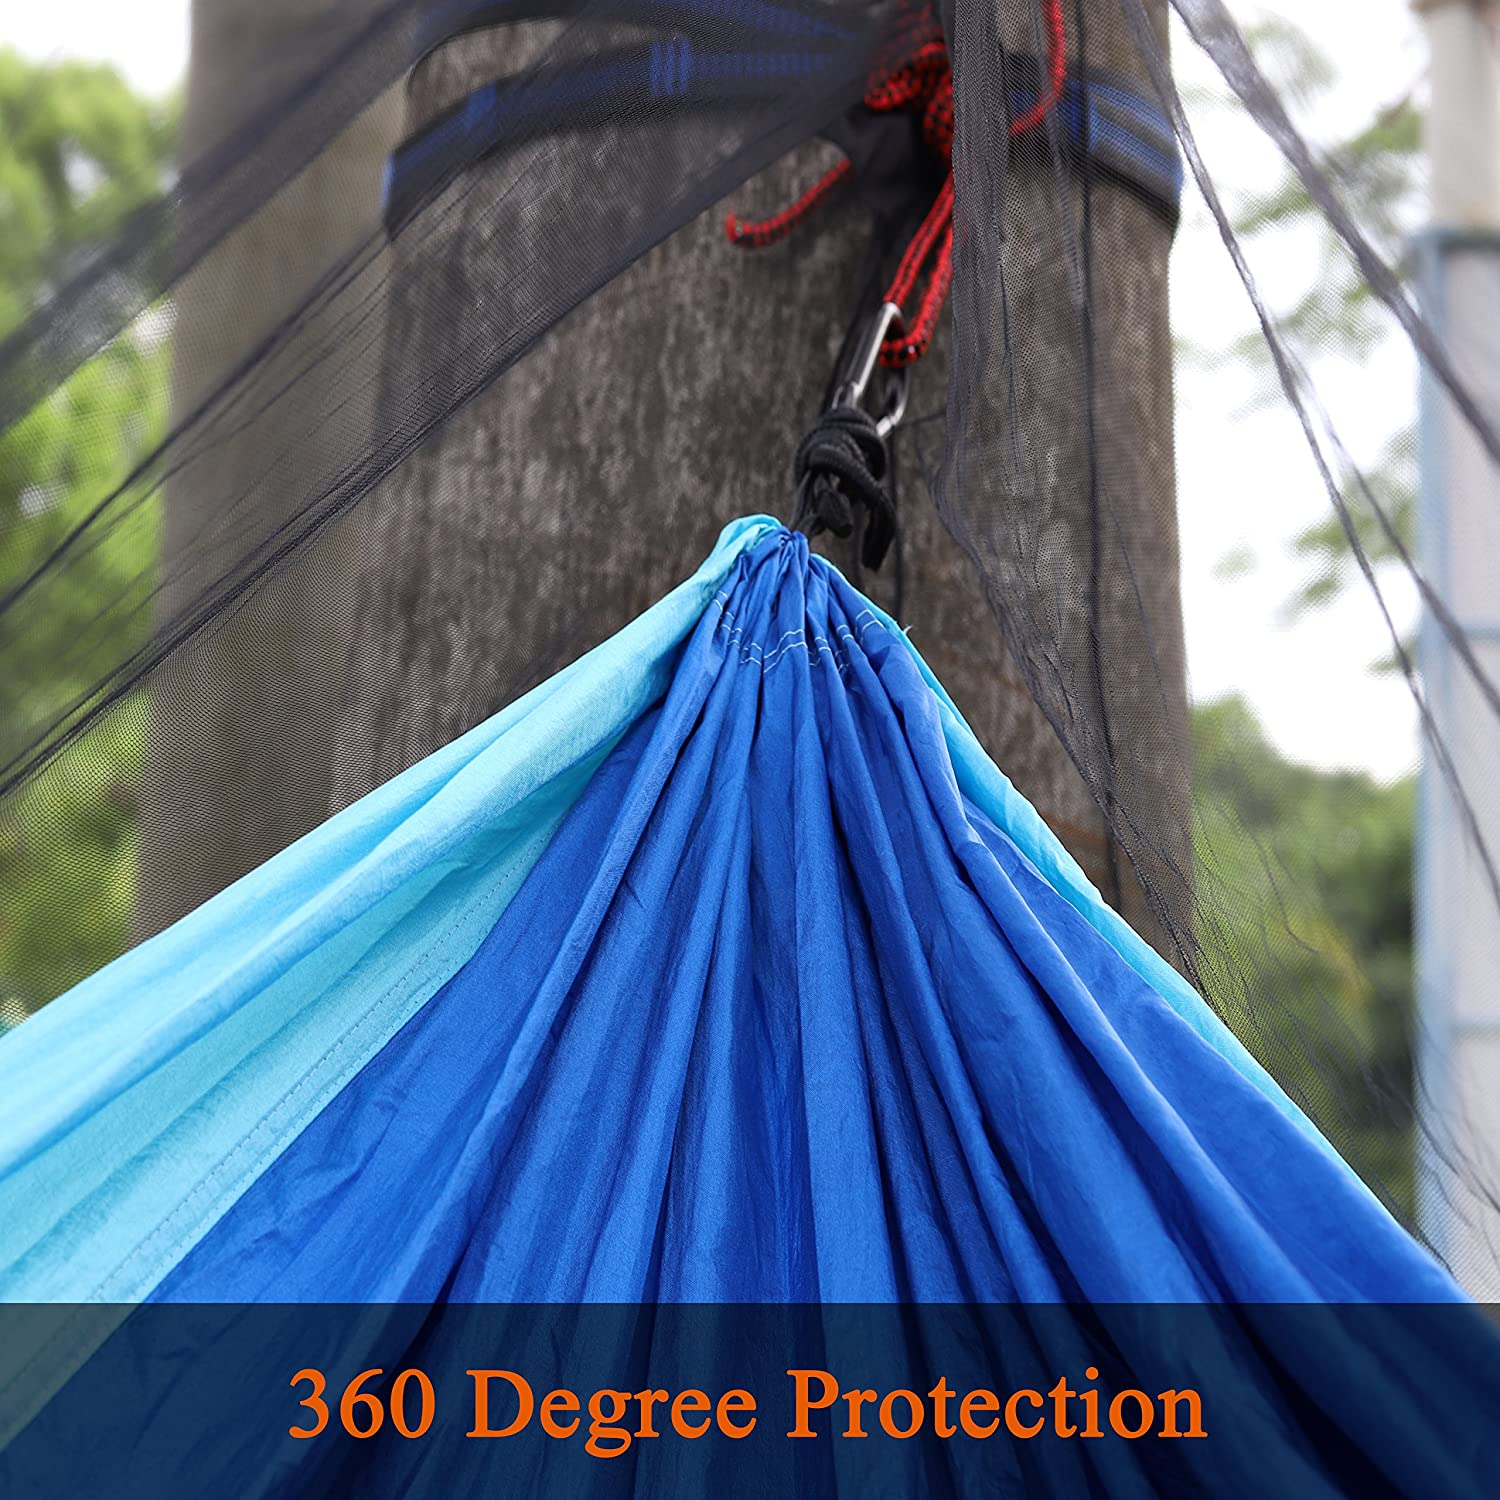 Double Sided Zipper for Easy Access Fit for ALL Camping Hammocks ALUCKY Harmmock Bug Net Camping Mosquito Net No See Ums /& Repels Insects Polyester netting for 360 Degree Protection